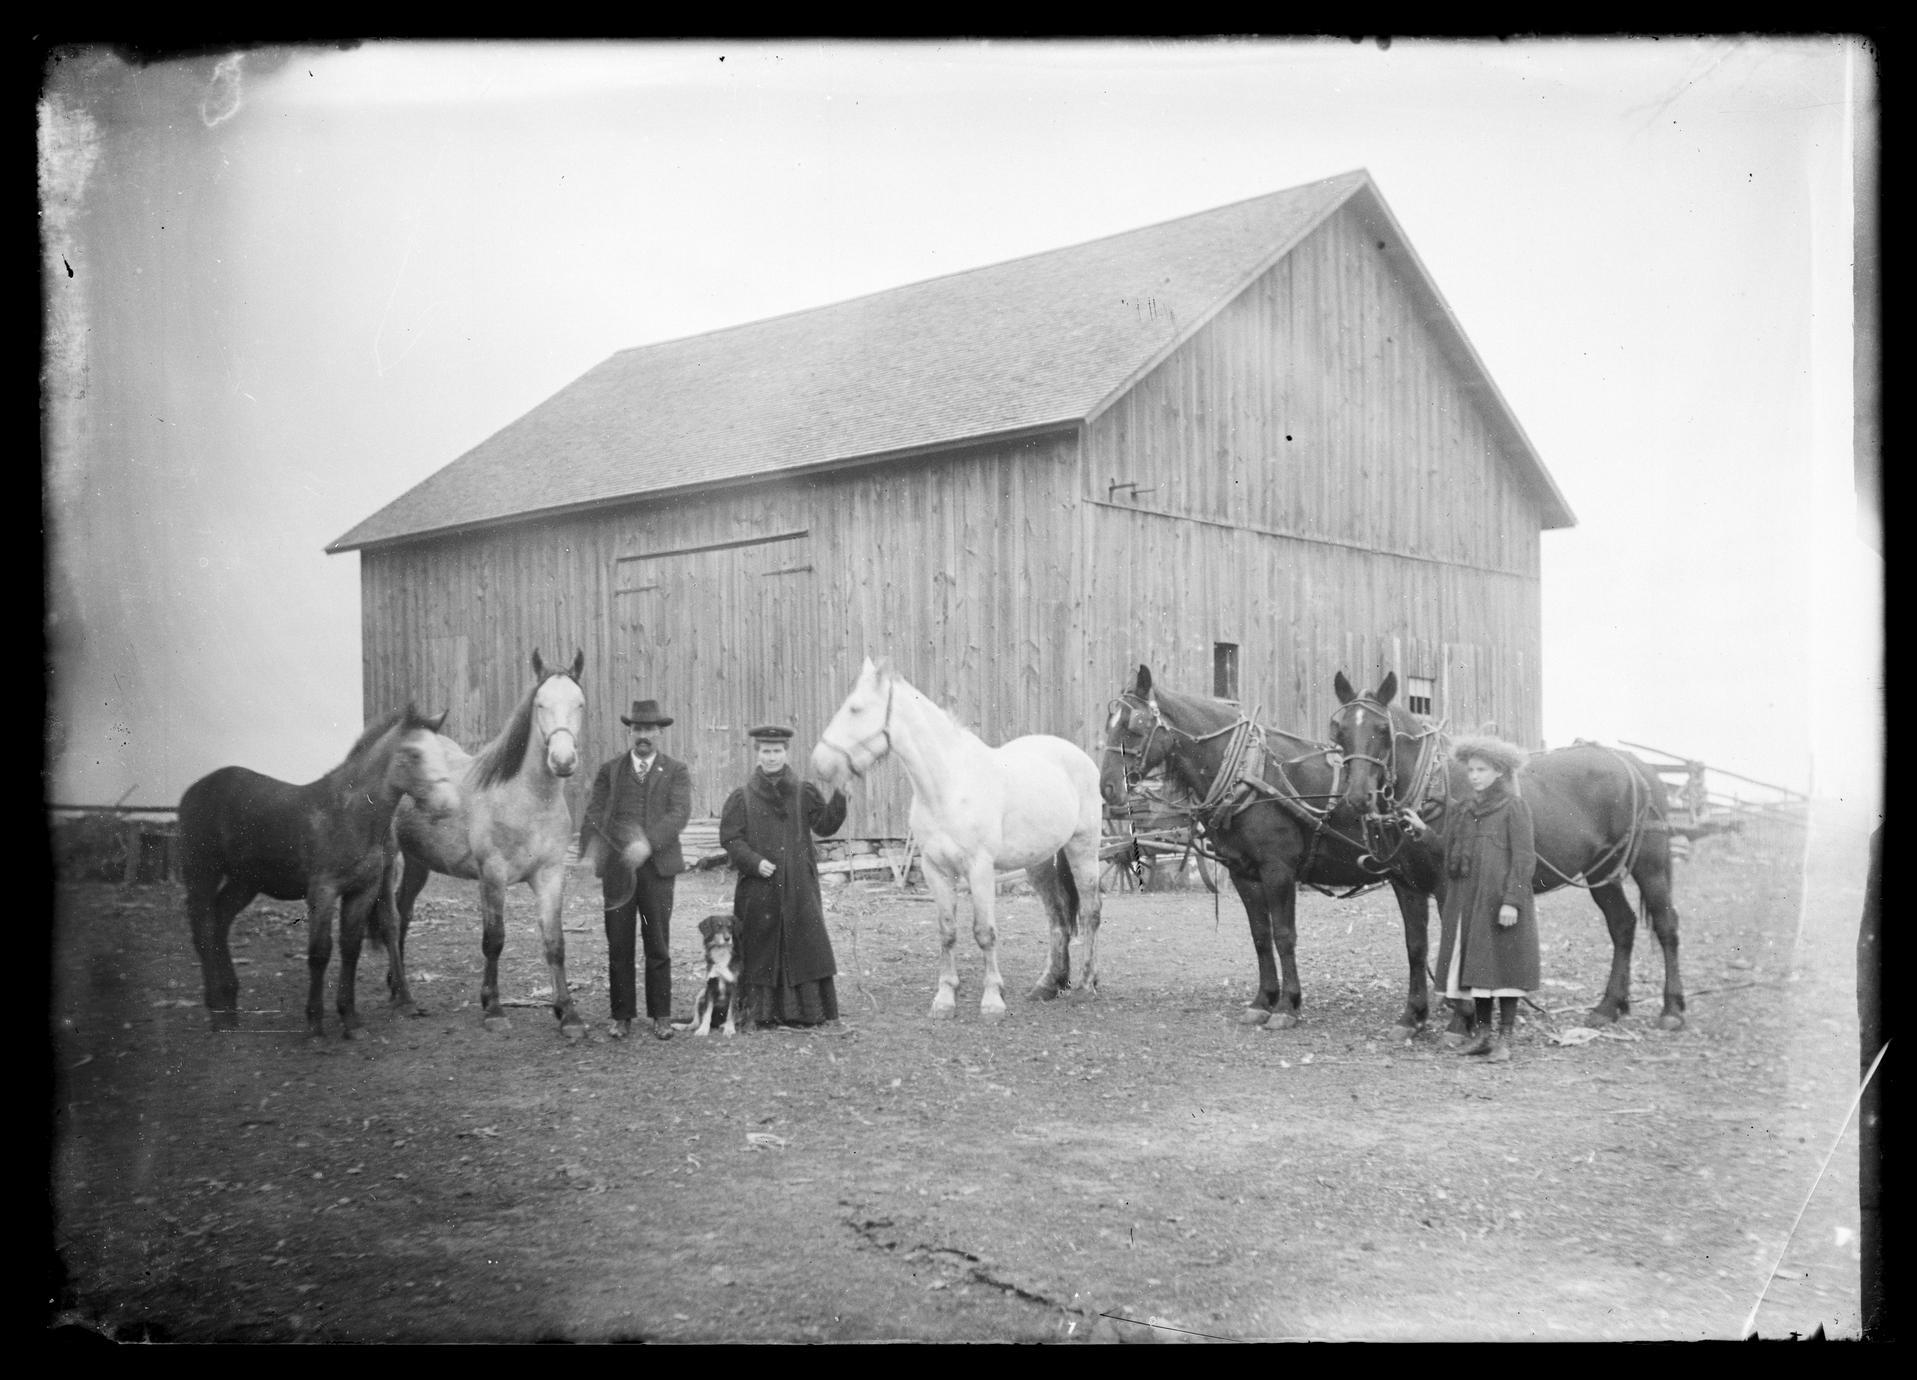 Barn and family with horses